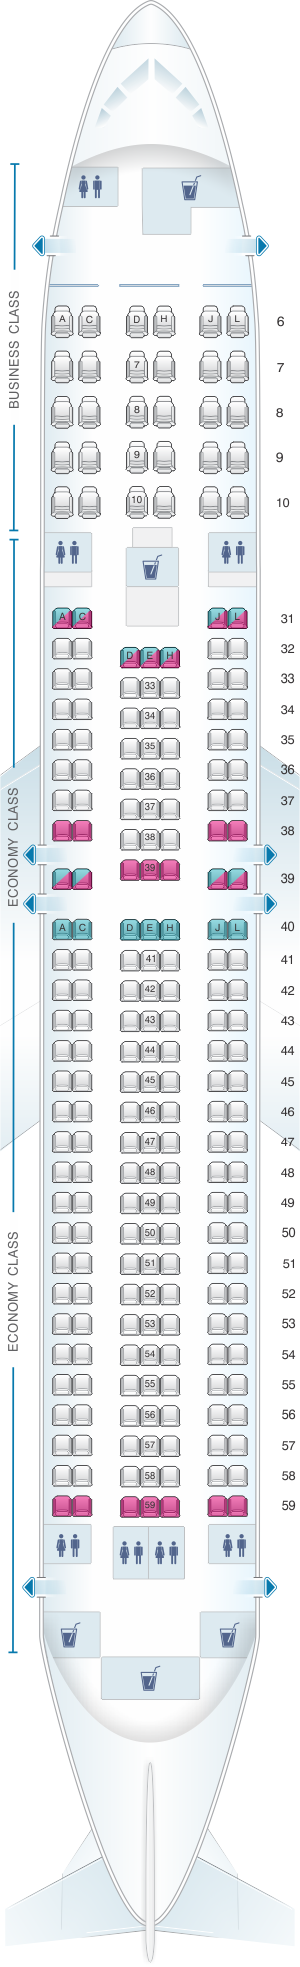 Seat map for China Eastern Airlines Boeing B767 300